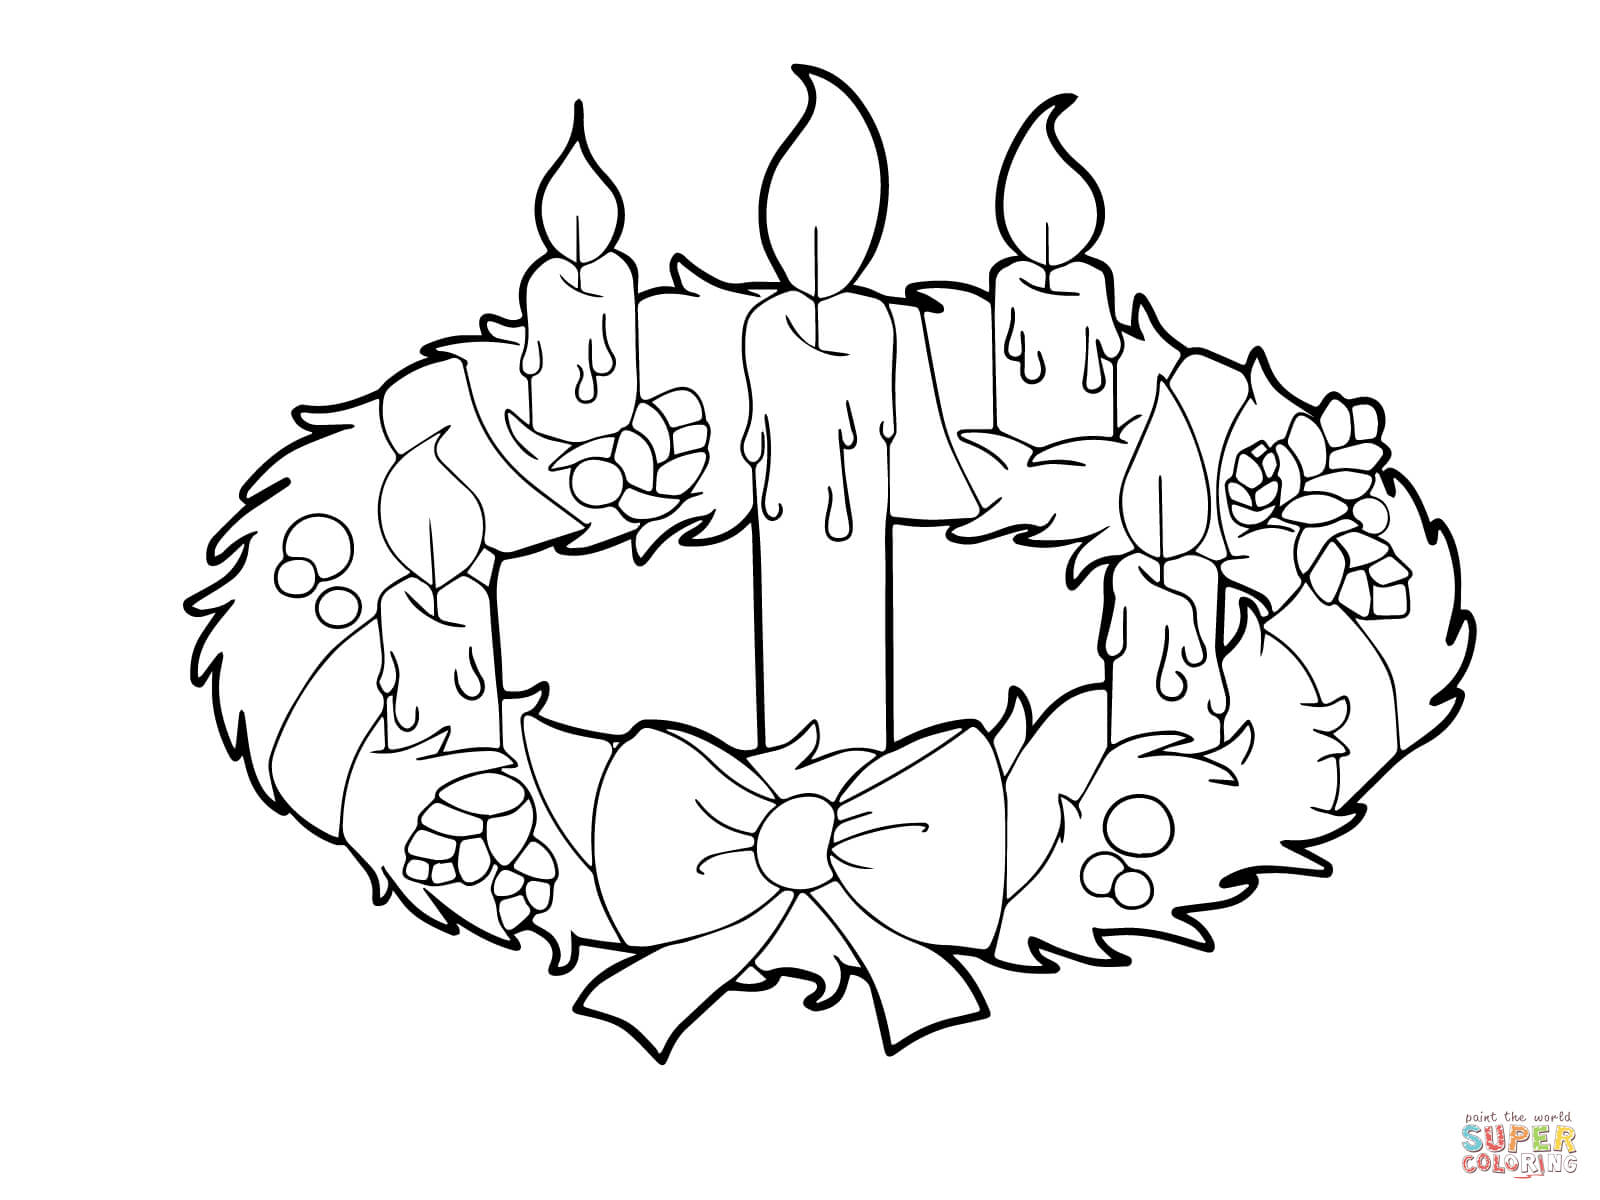 Advent Wreath Black And White Clipart Clipart Suggest